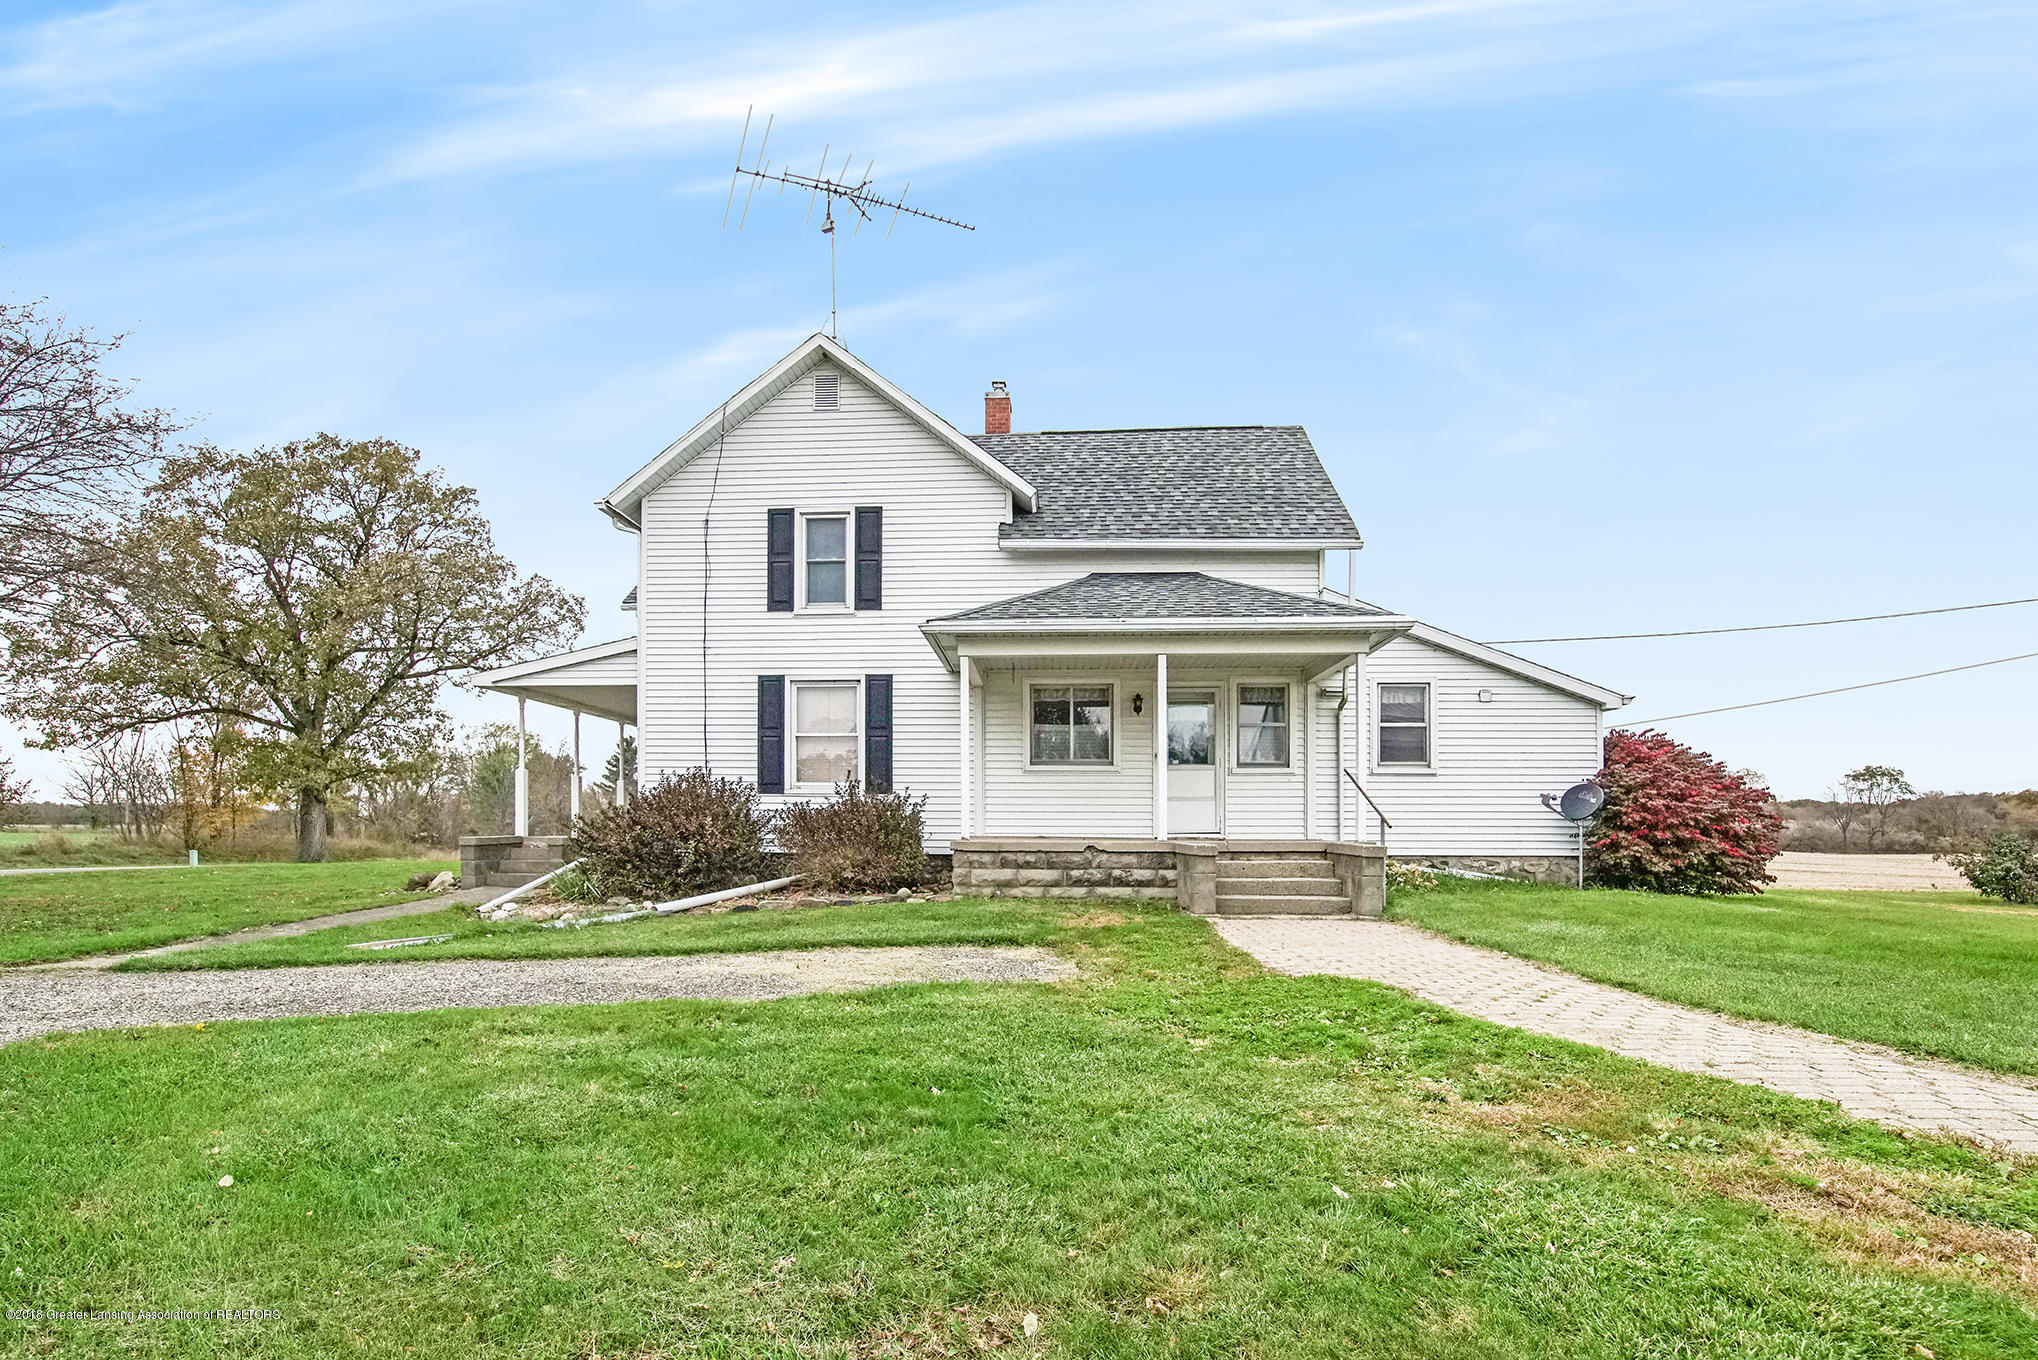 5606 W Barnes Rd - Front - 1